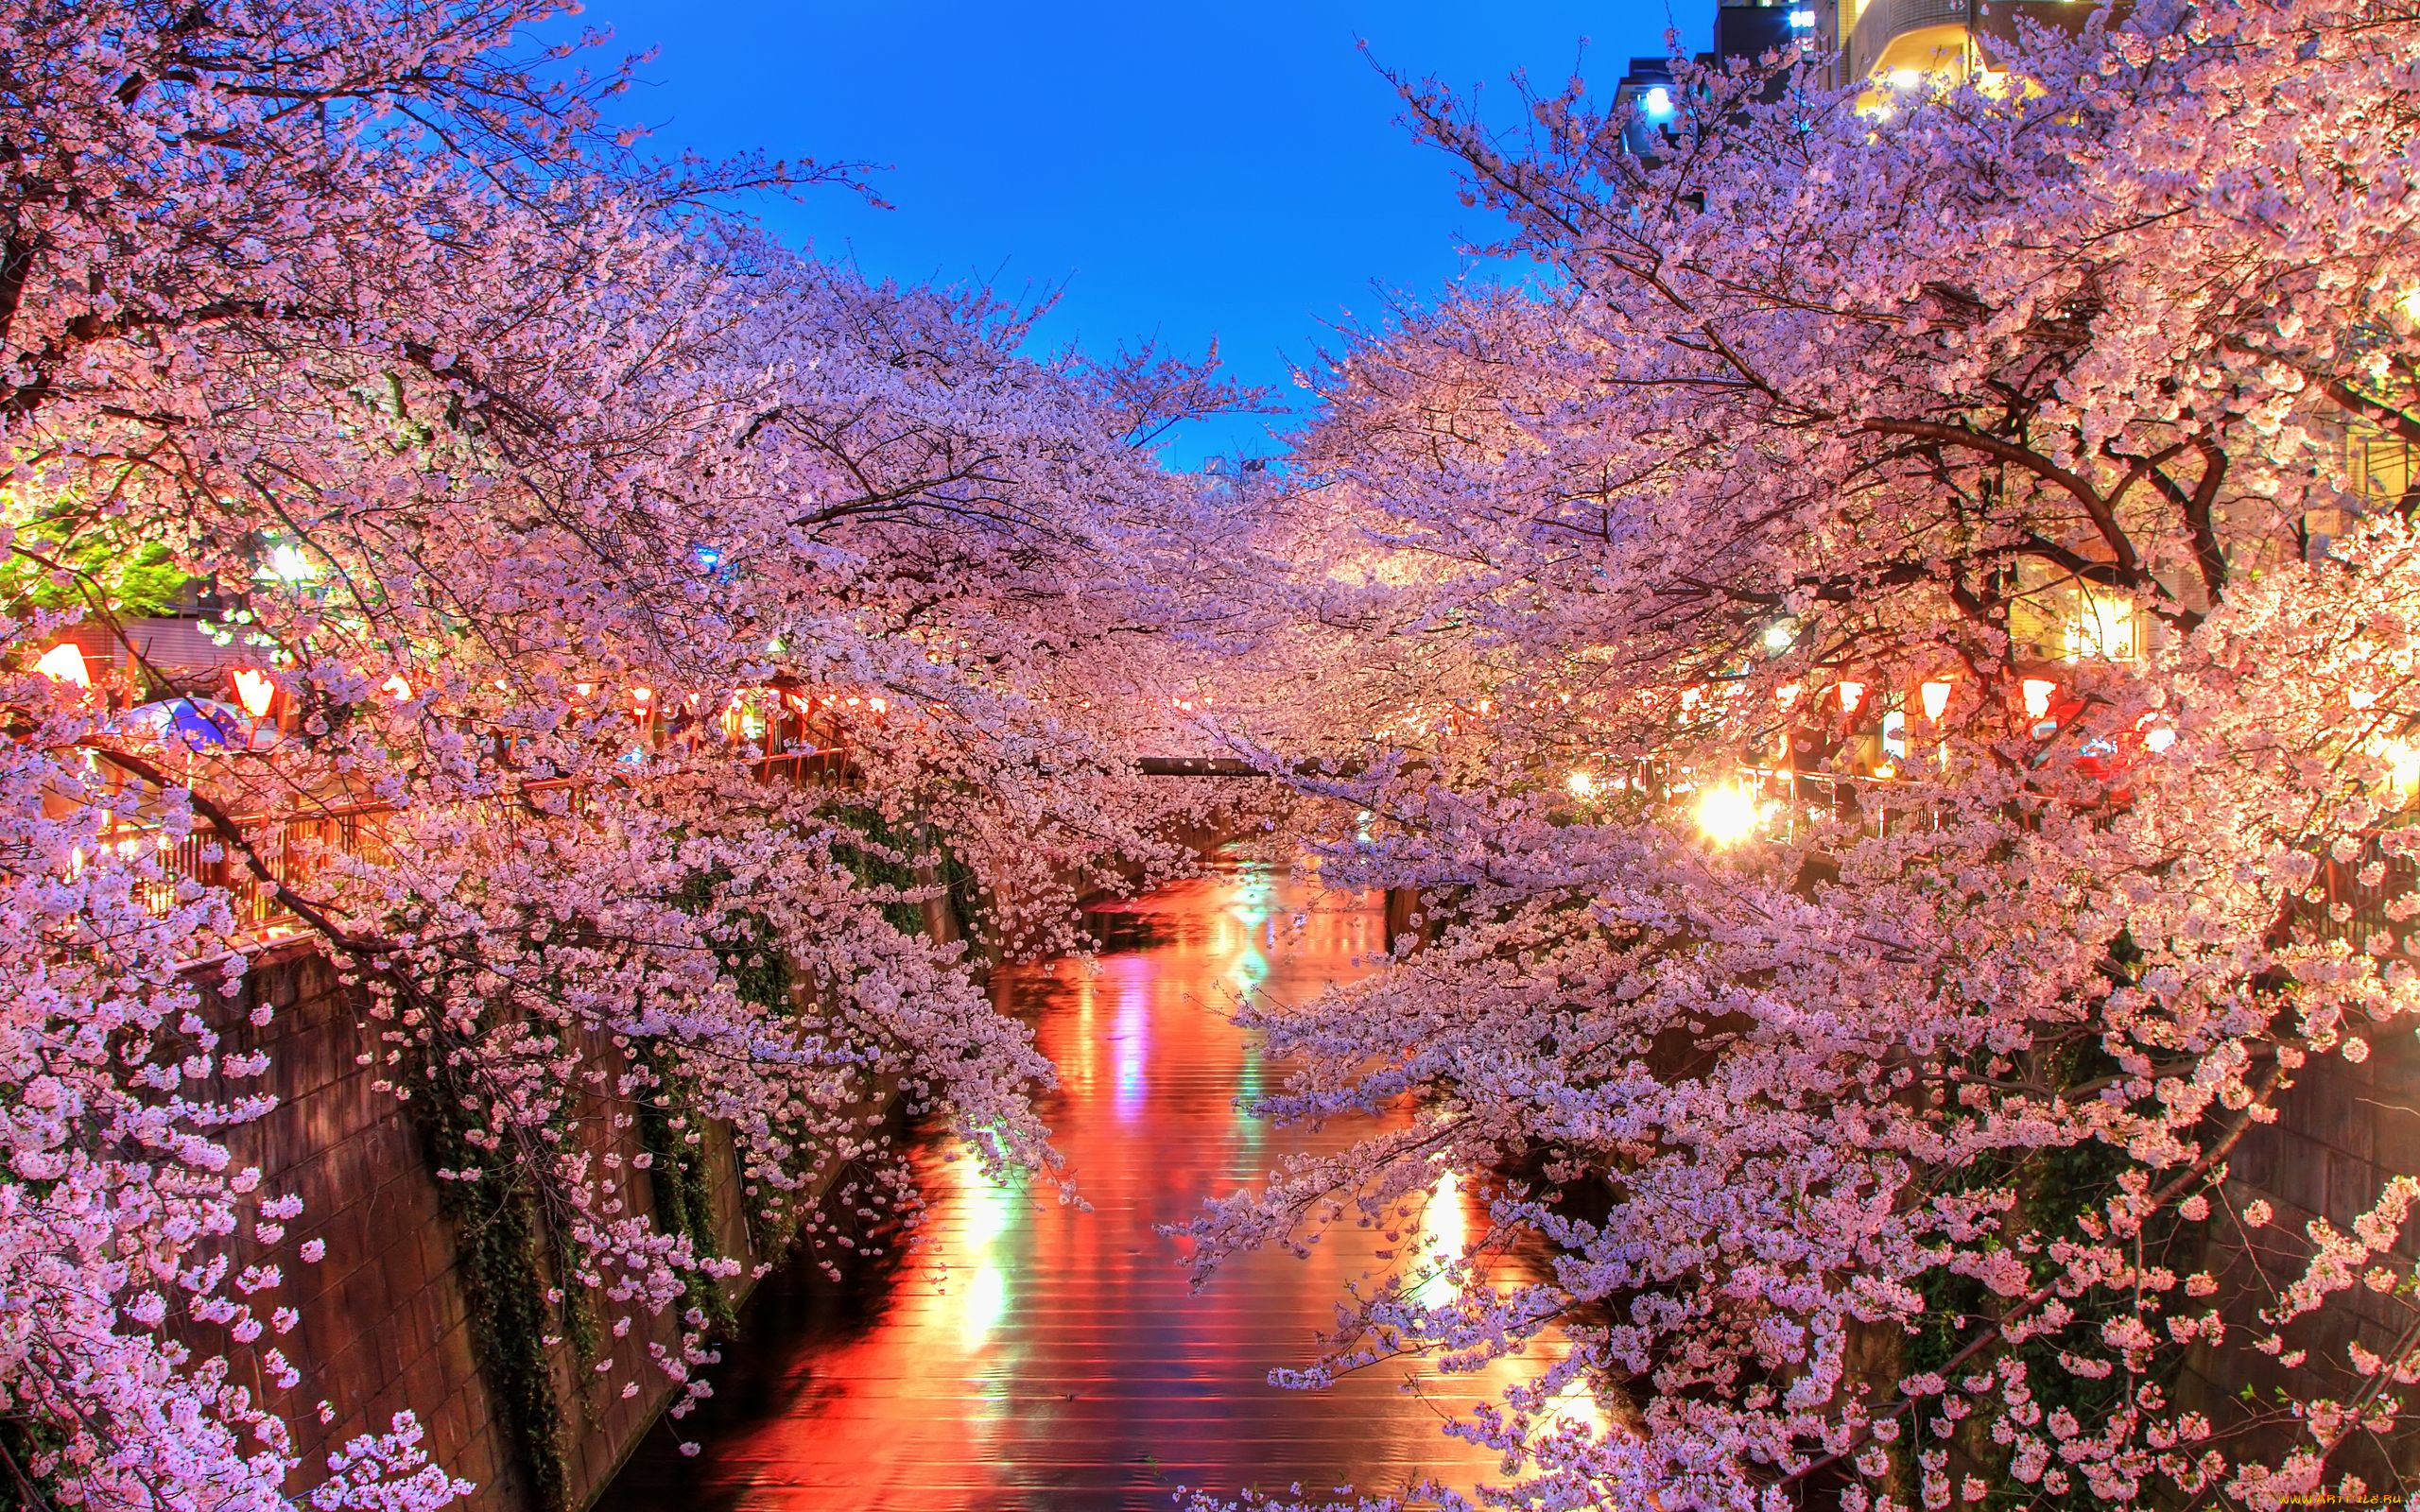 cherry blossom pictures - HD2048×1536